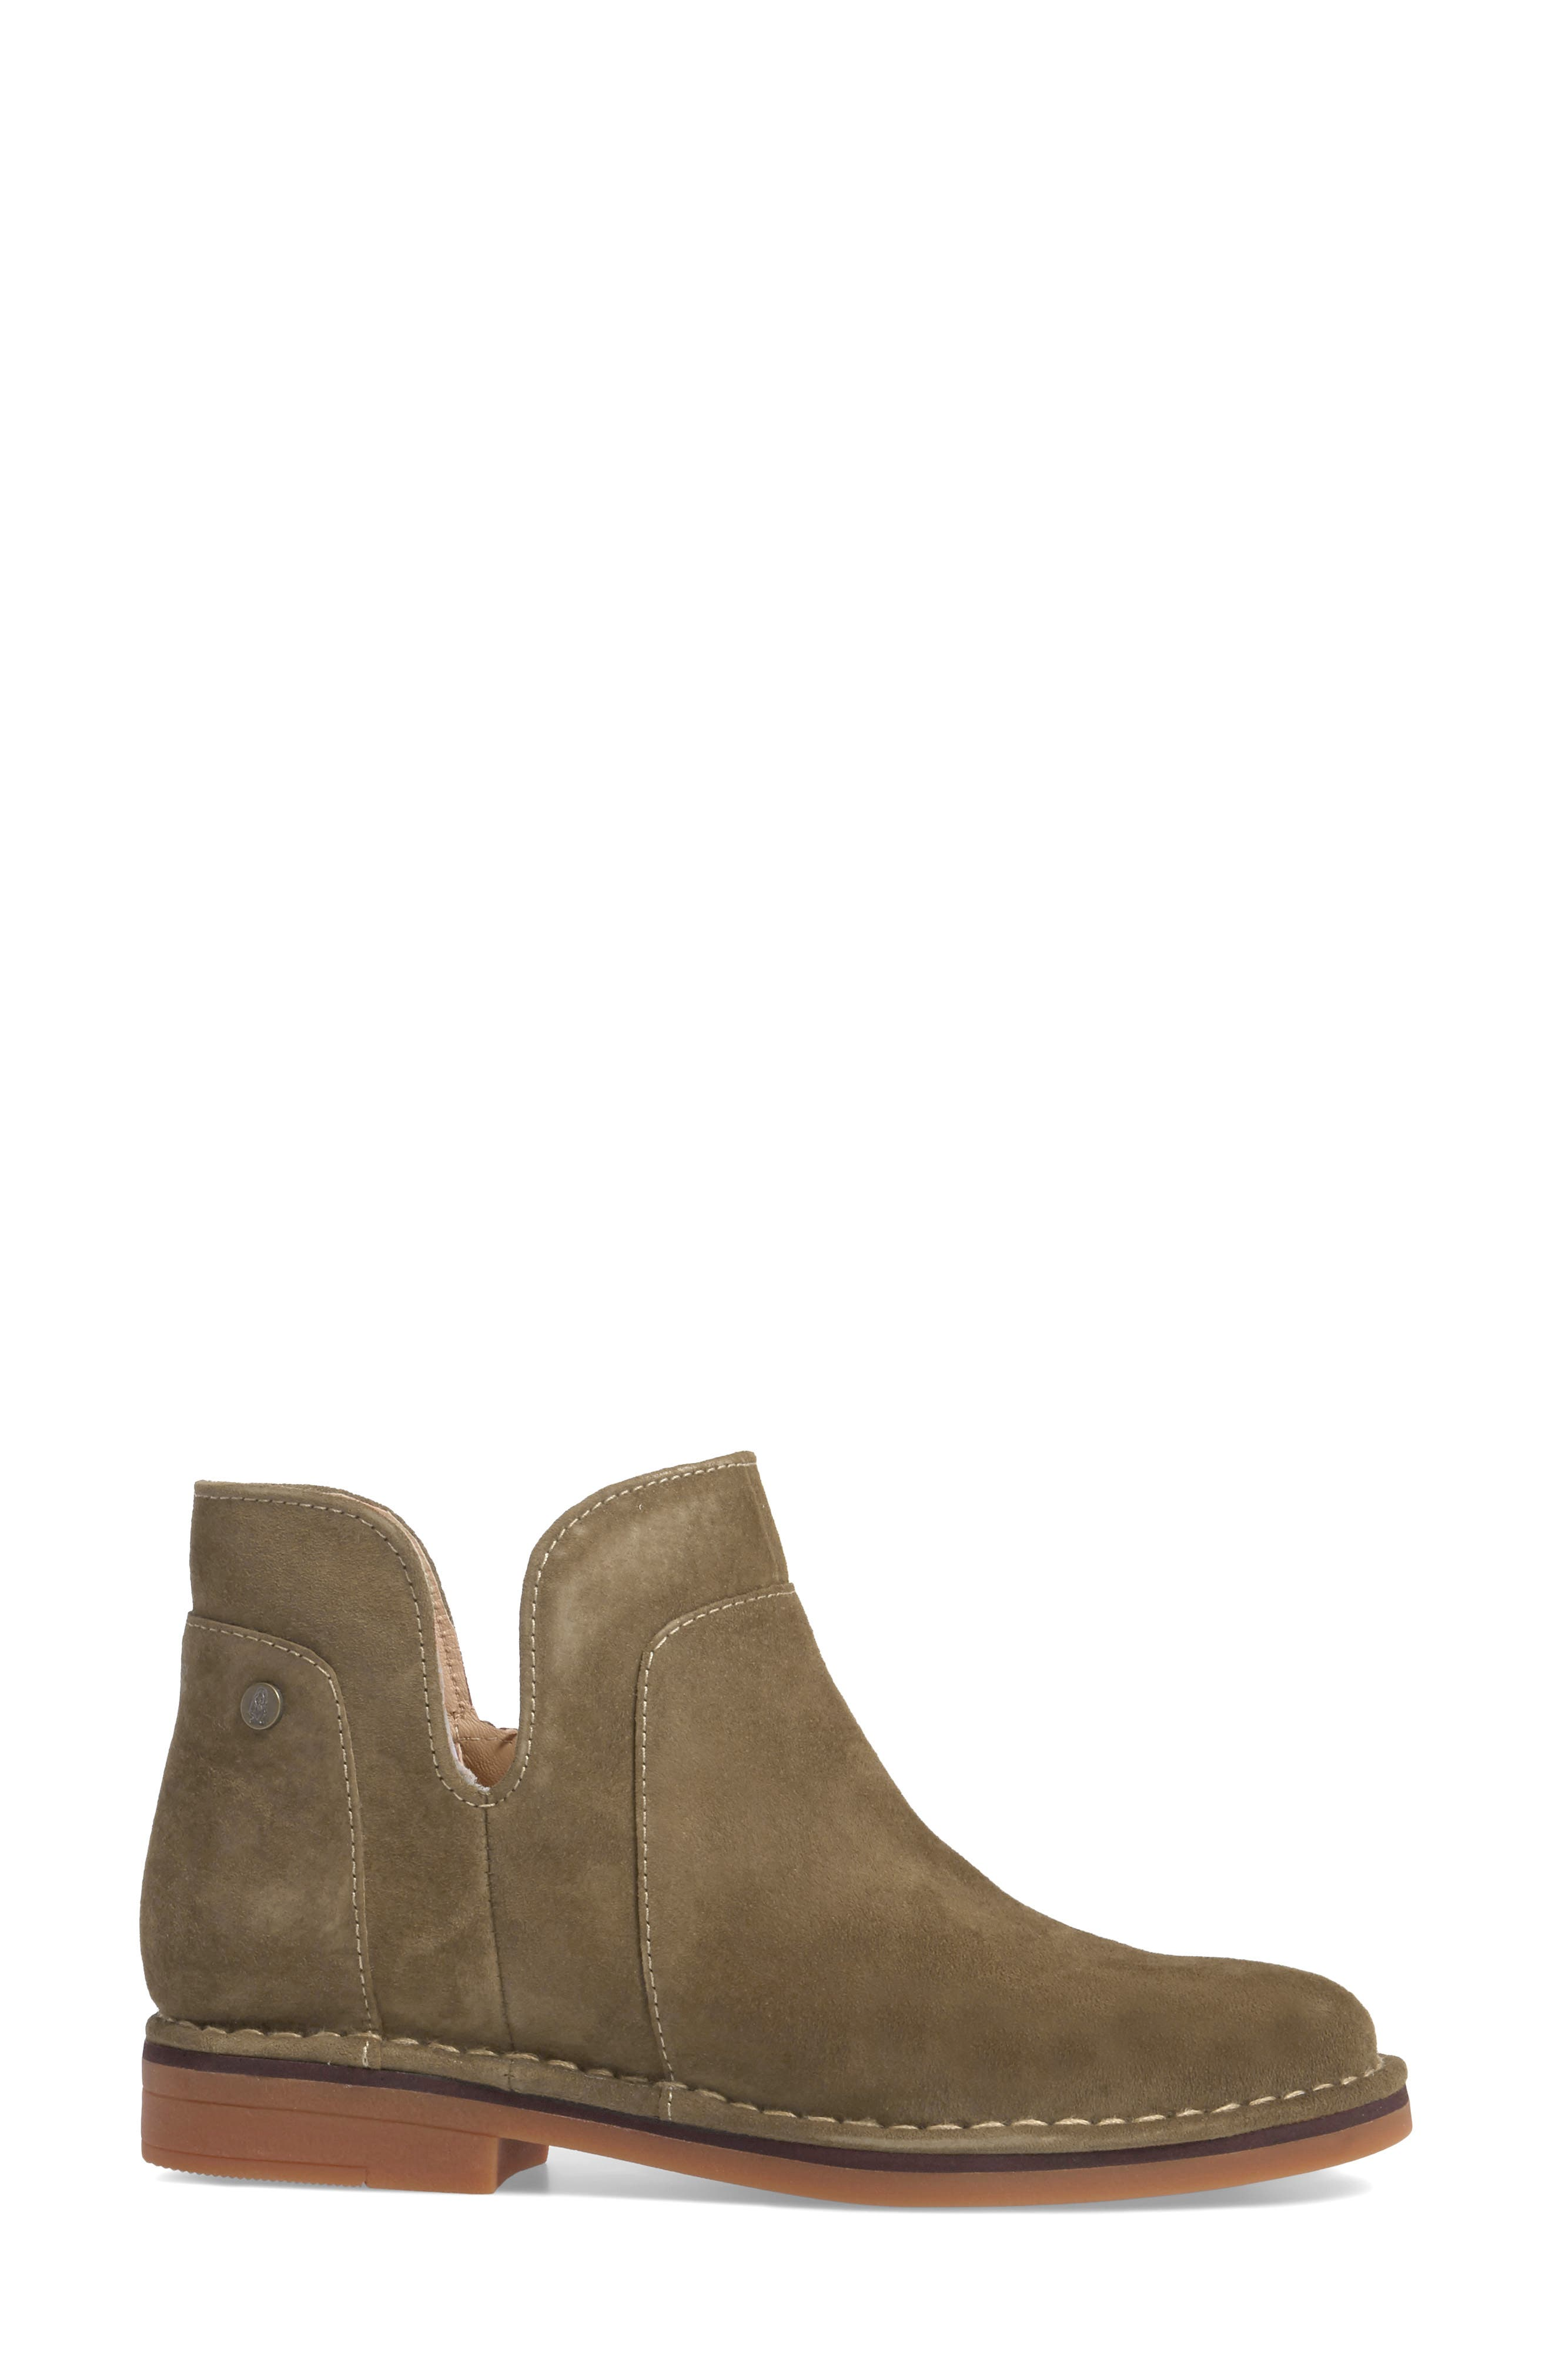 Claudia Catelyn Bootie,                             Alternate thumbnail 9, color,